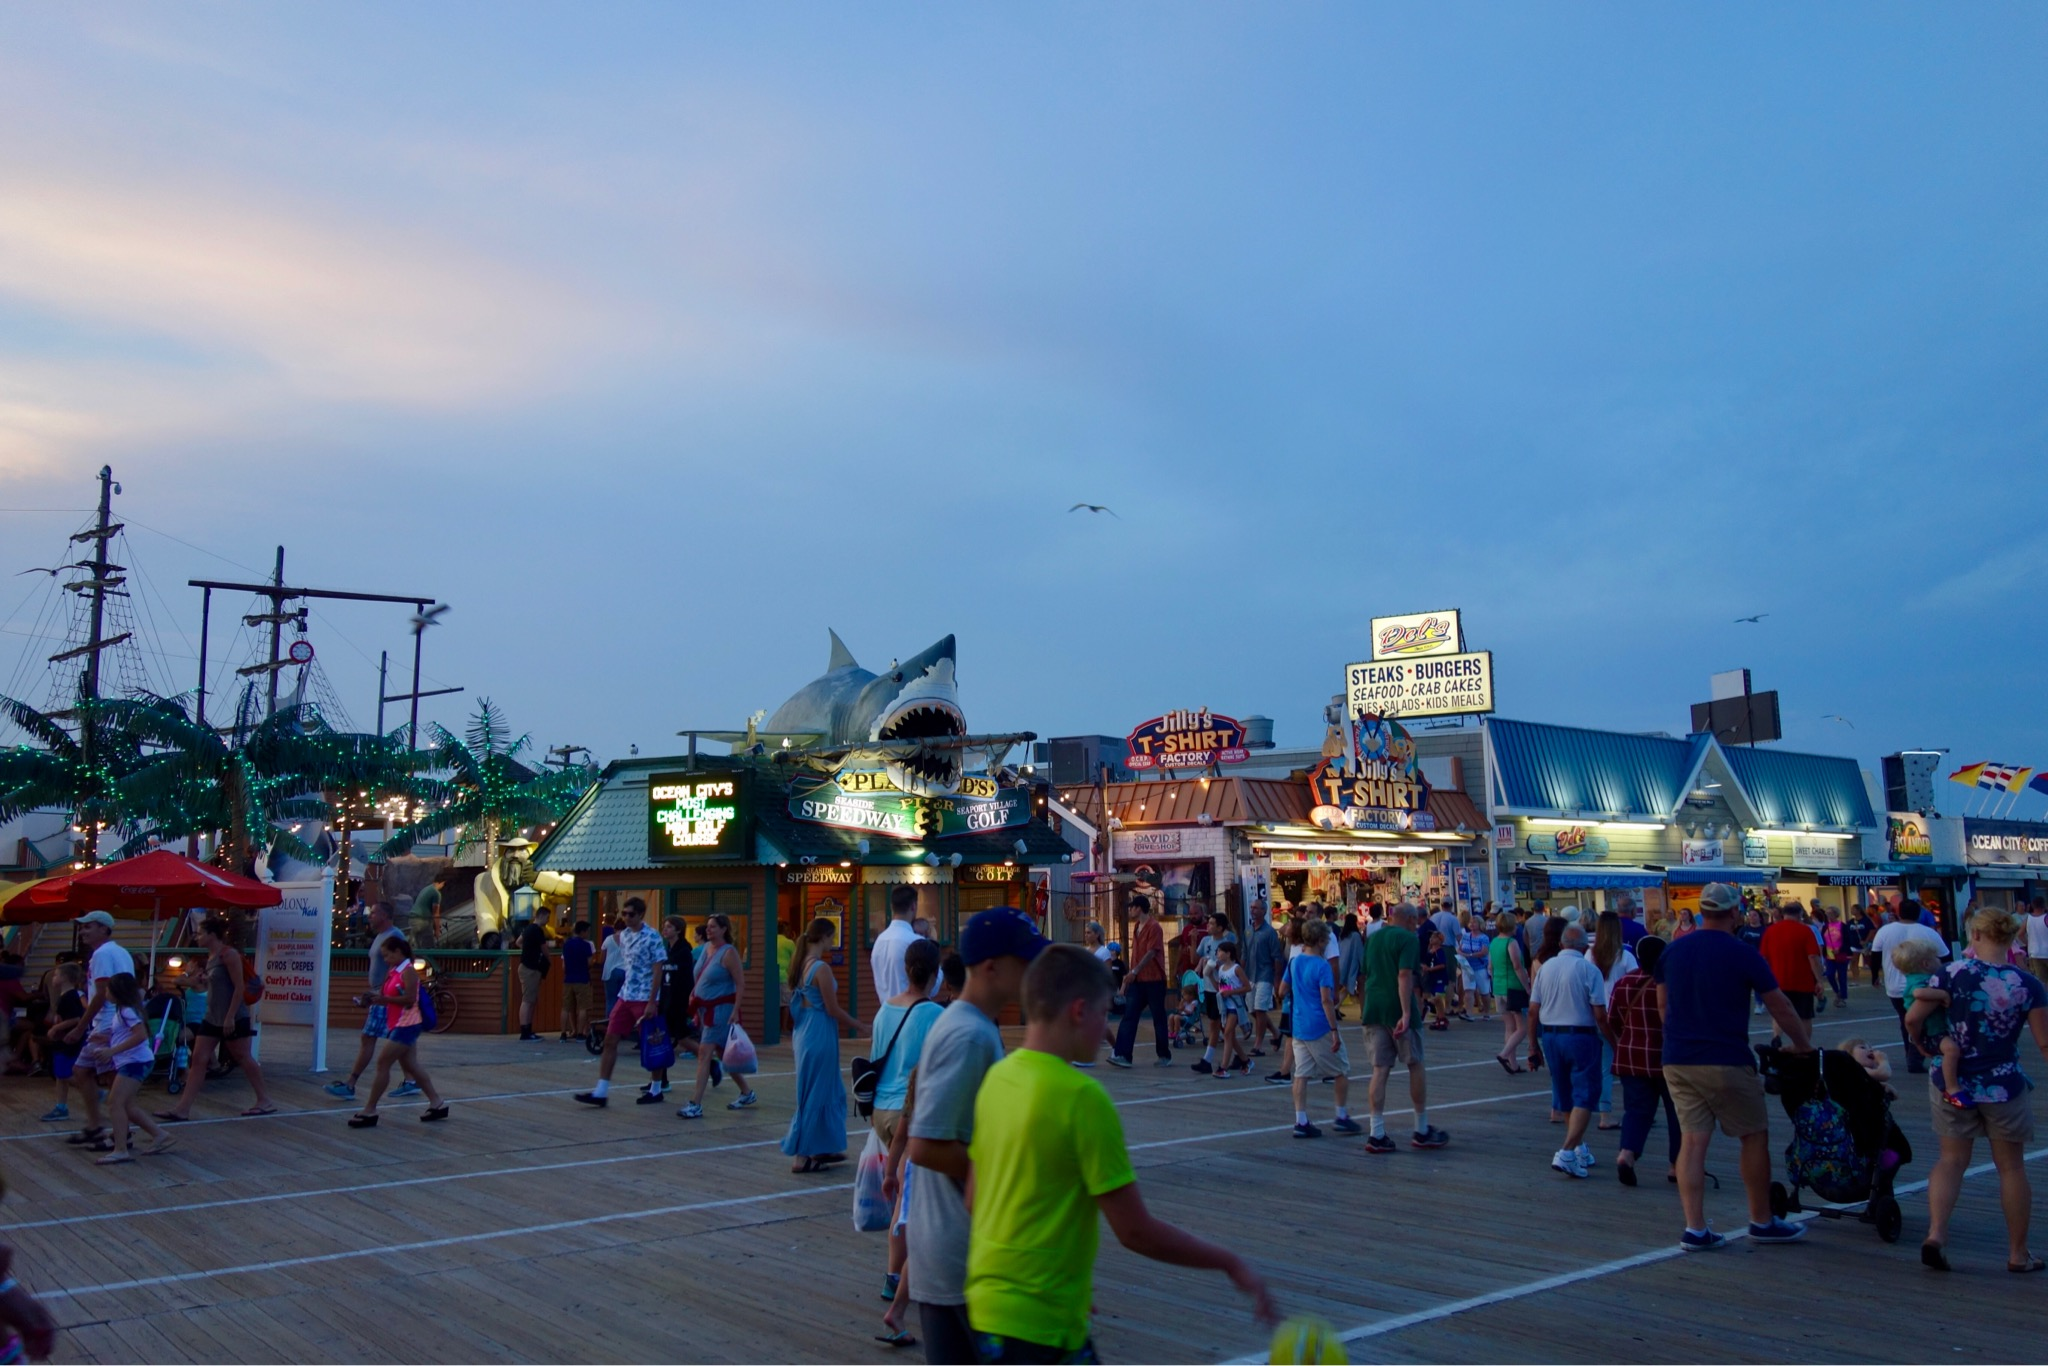 Busy amusements and attractions on Ocean City promenade